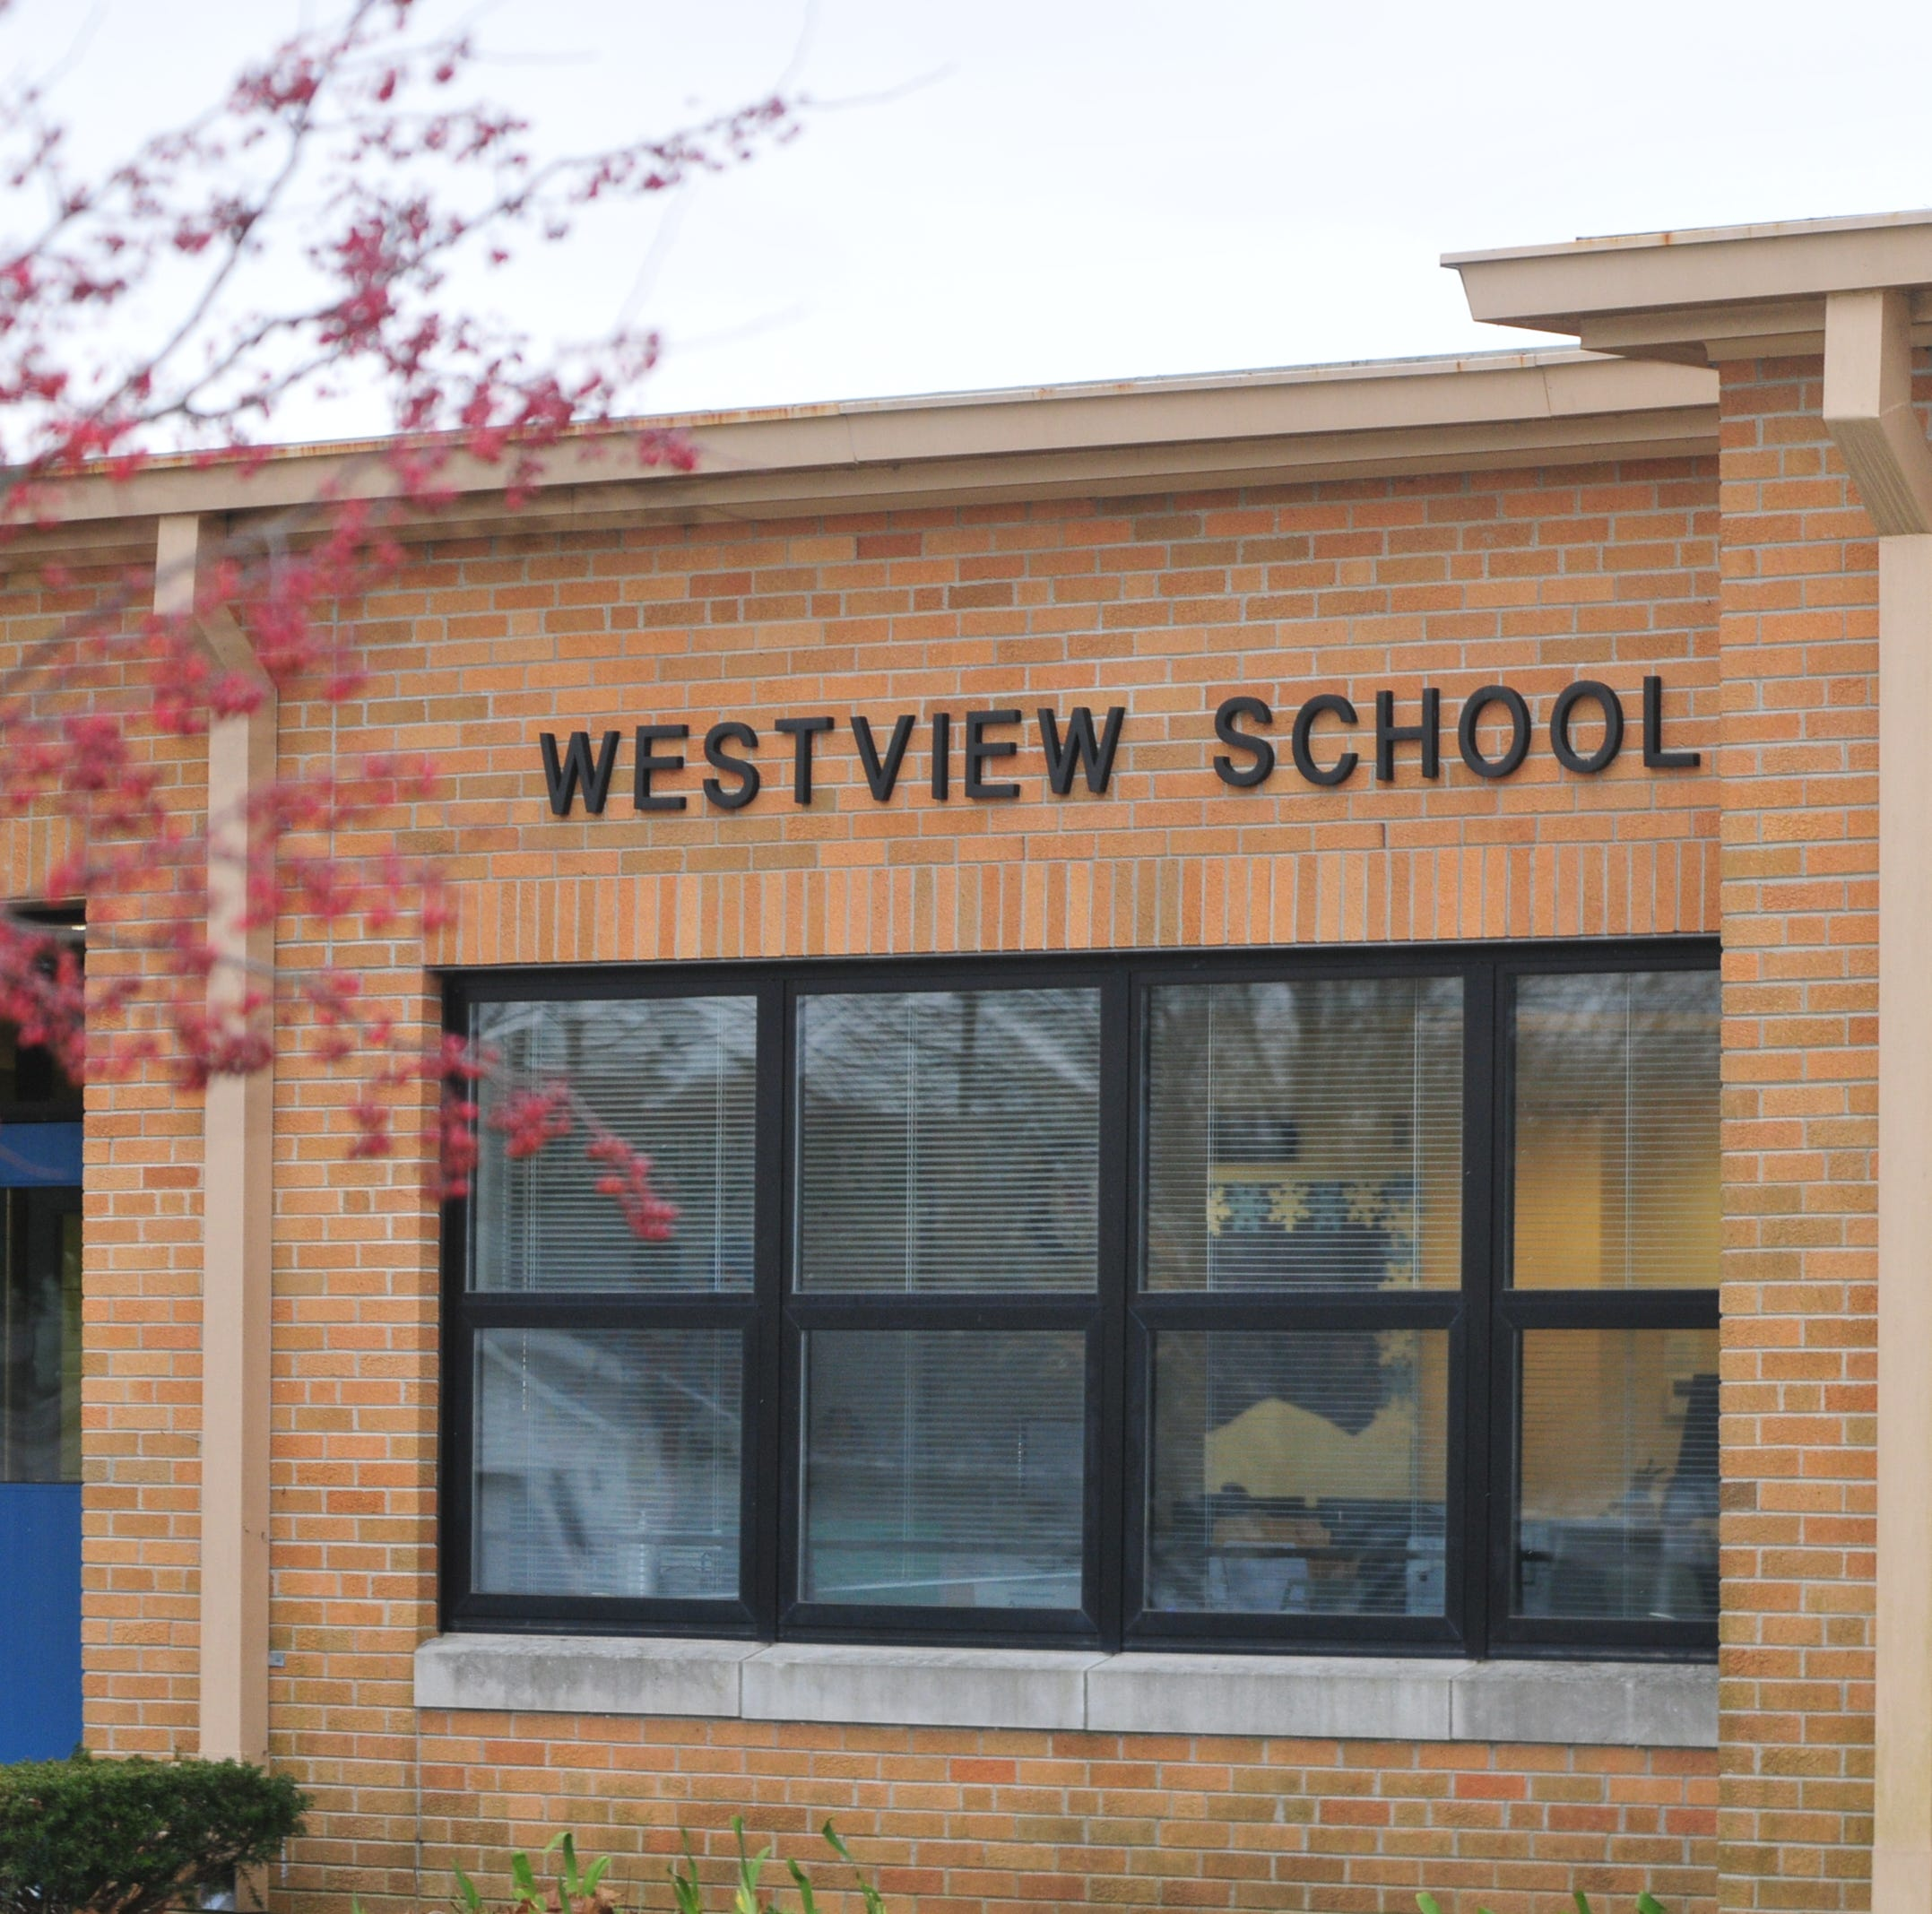 Johns Manville employees raise funds, school supplies for Westview Elementary